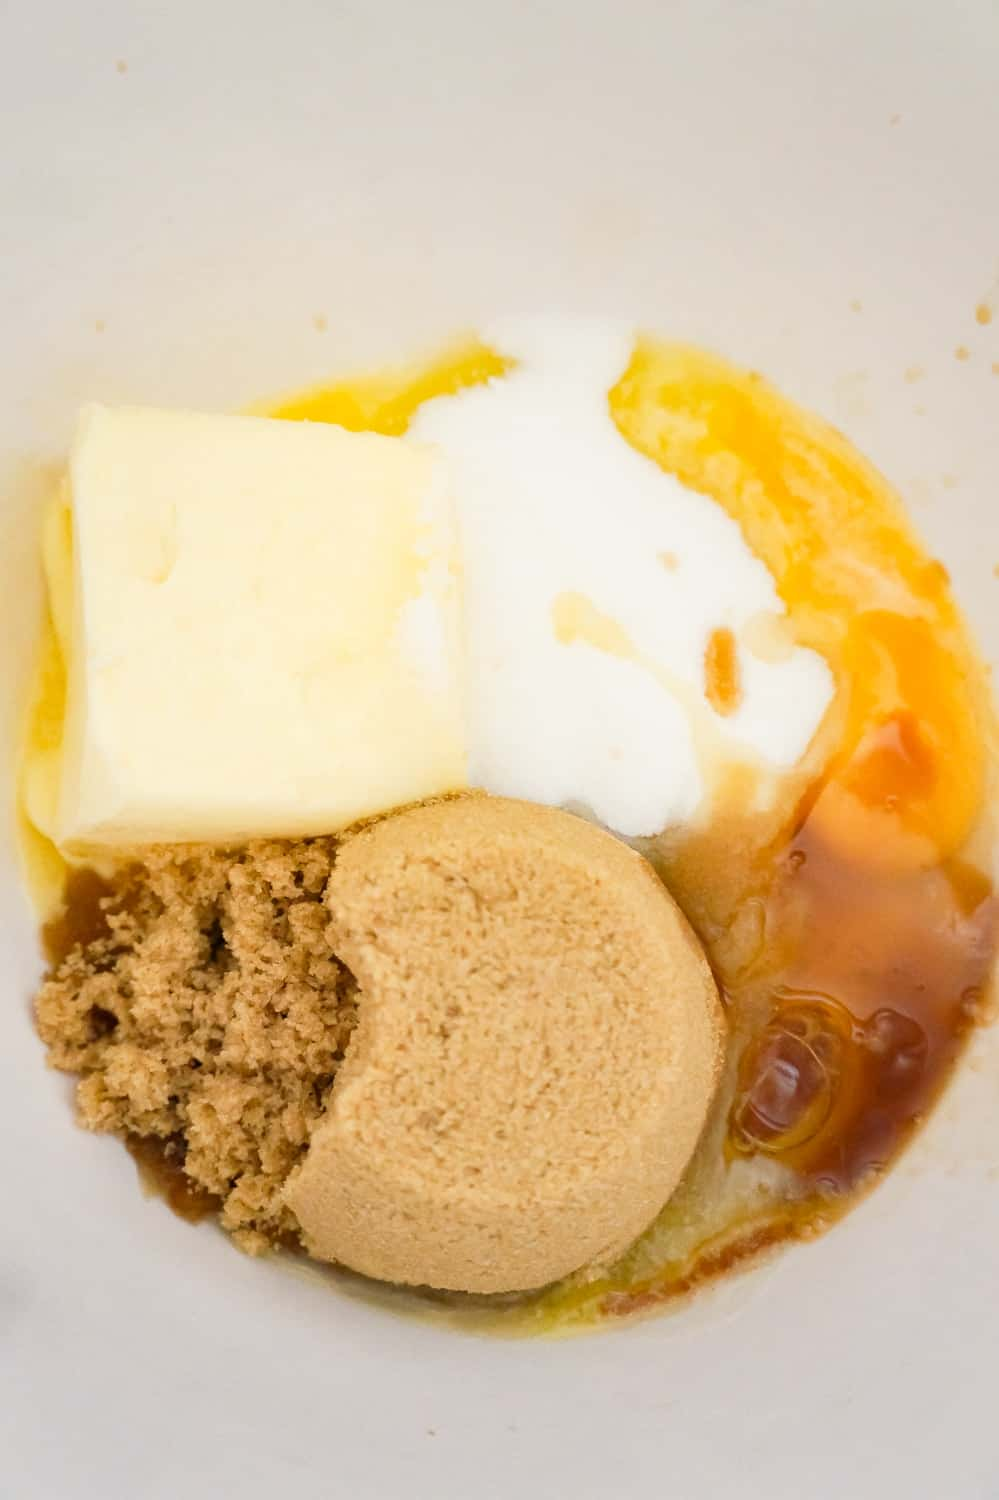 brown sugar, granulated sugar, softened butter, vanilla extract and an egg in a mixing bowl